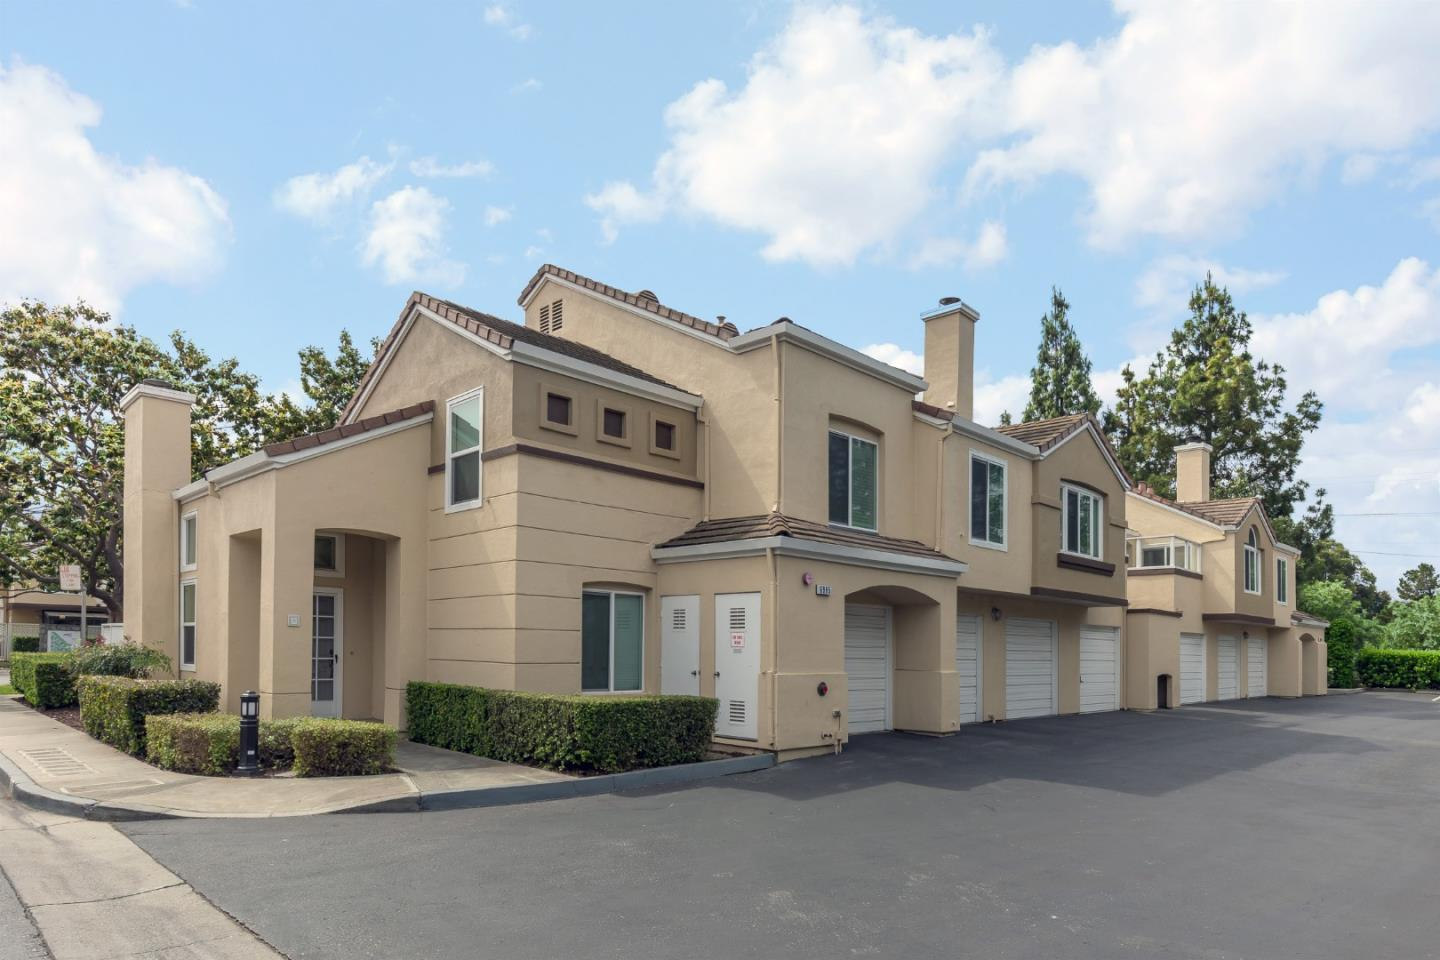 Image for 6985 Rodling Drive D, <br>San Jose 95138